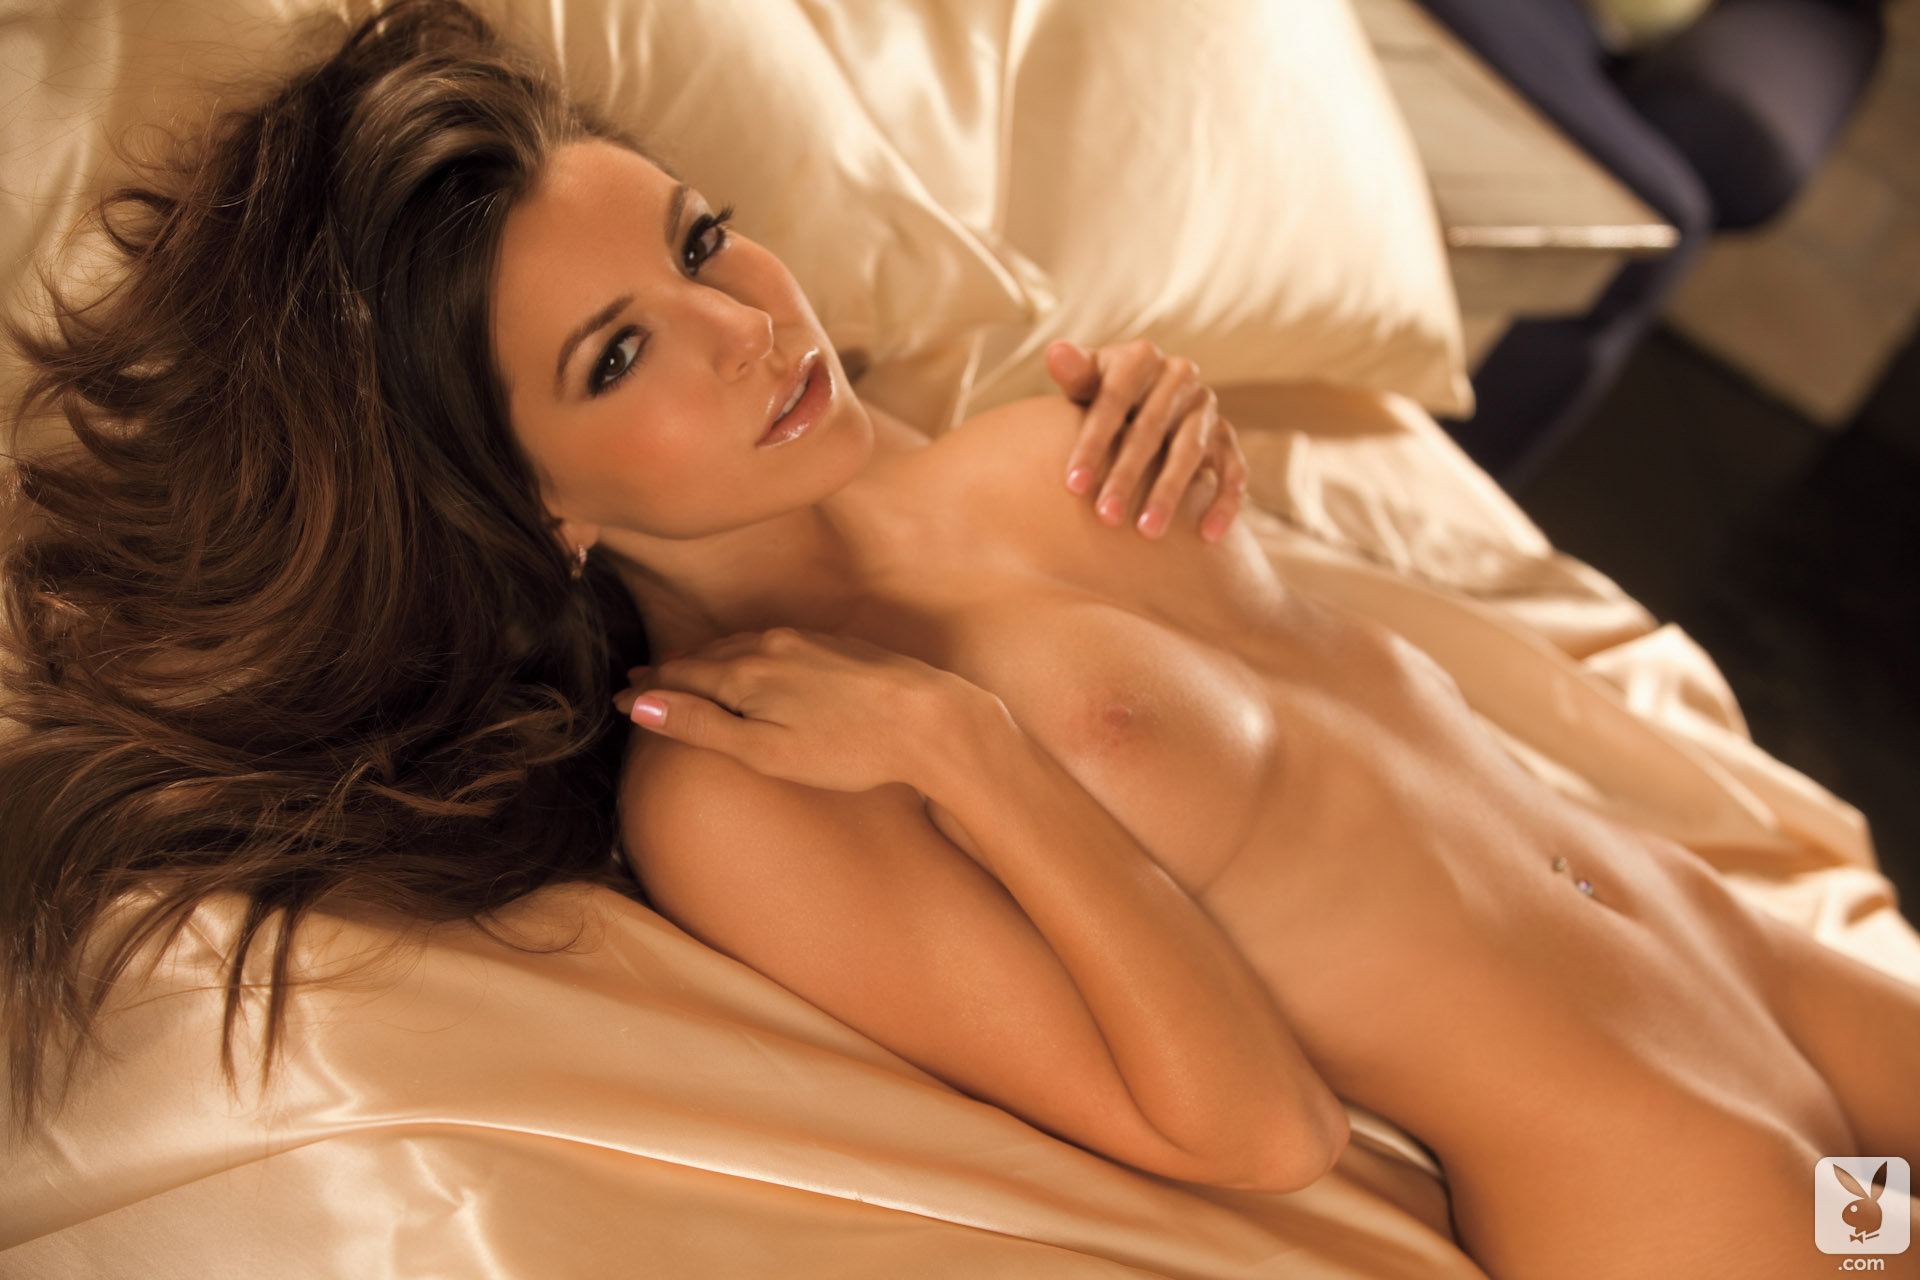 And shelby chesnes nude teammate